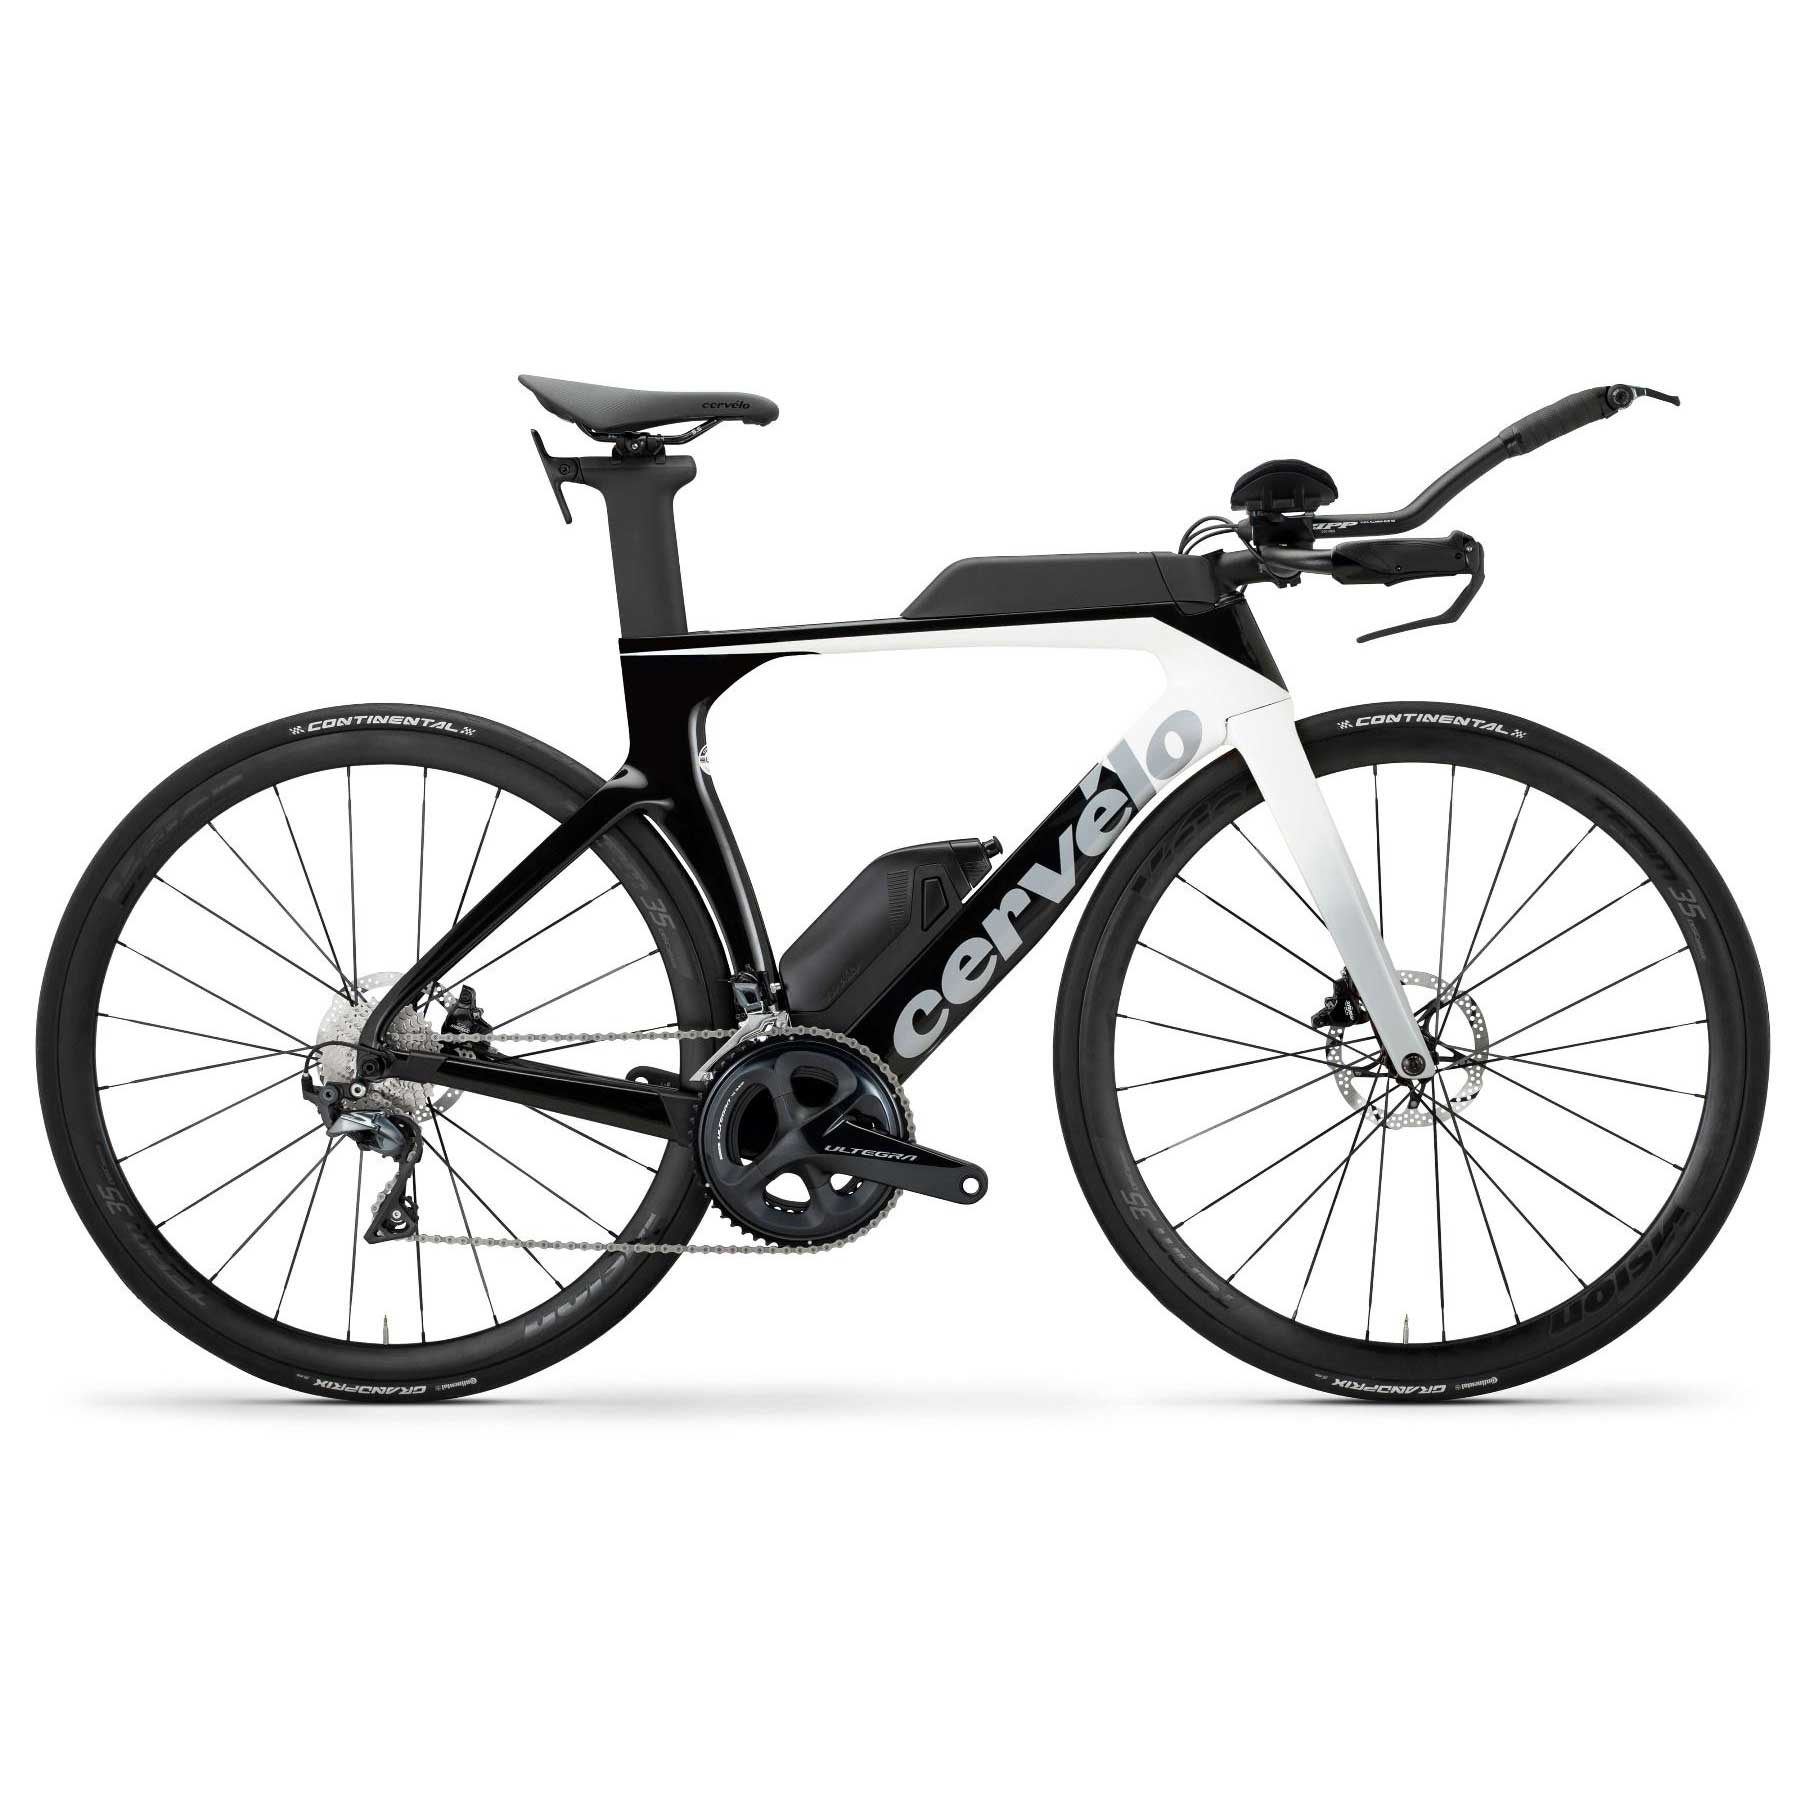 Cervelo P-Series Ultegra Triathlon Bike